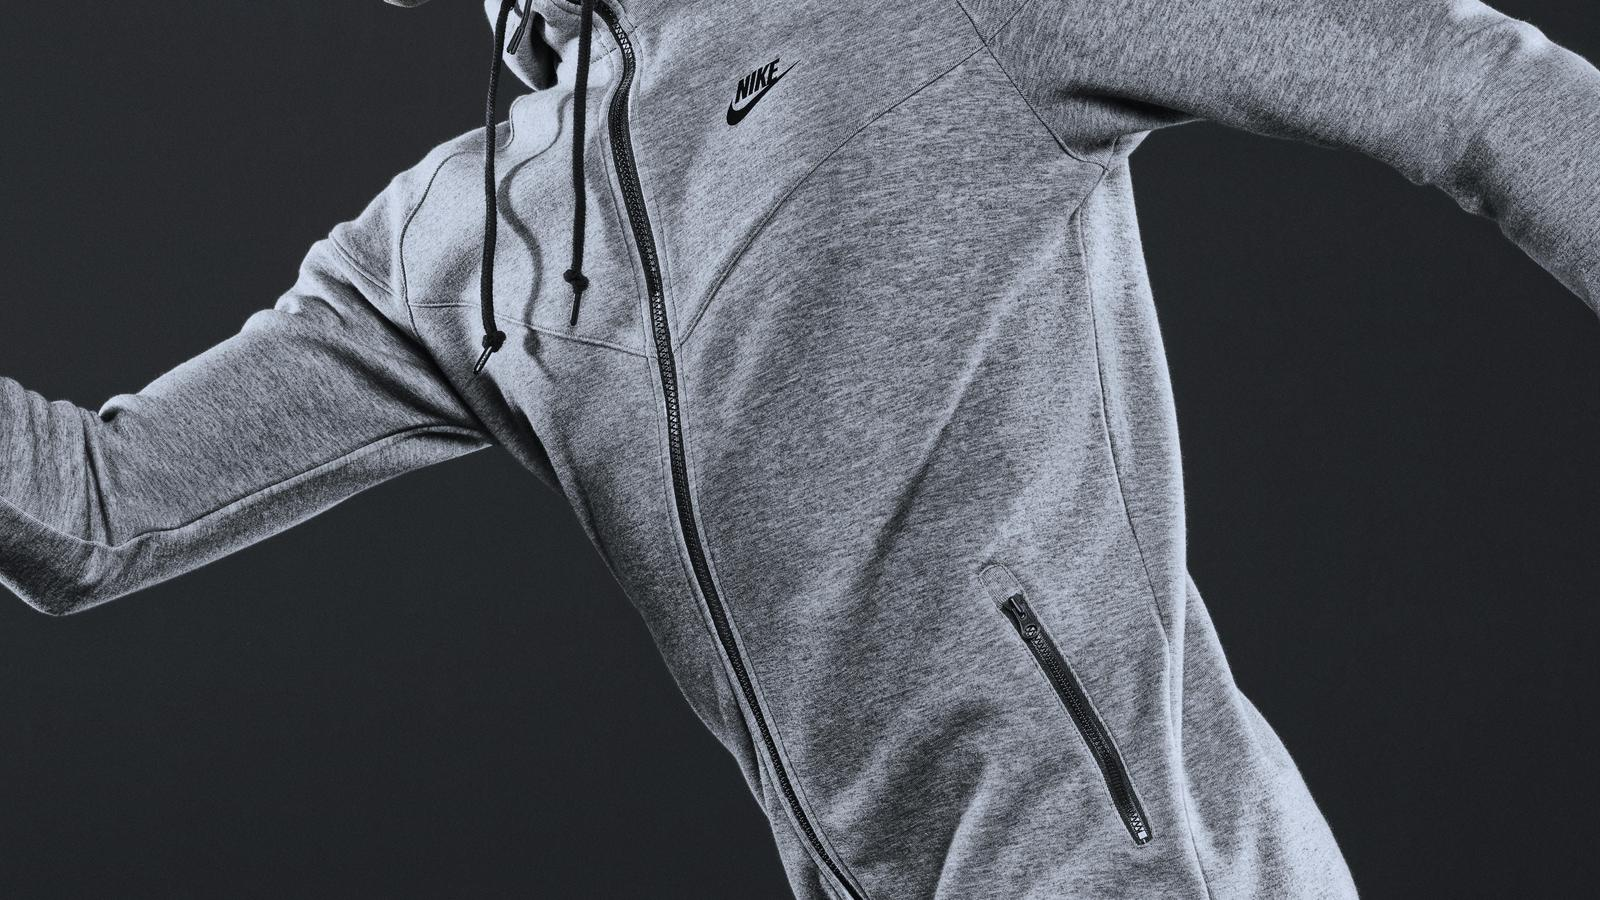 nike tech sweat suit women photo - 1